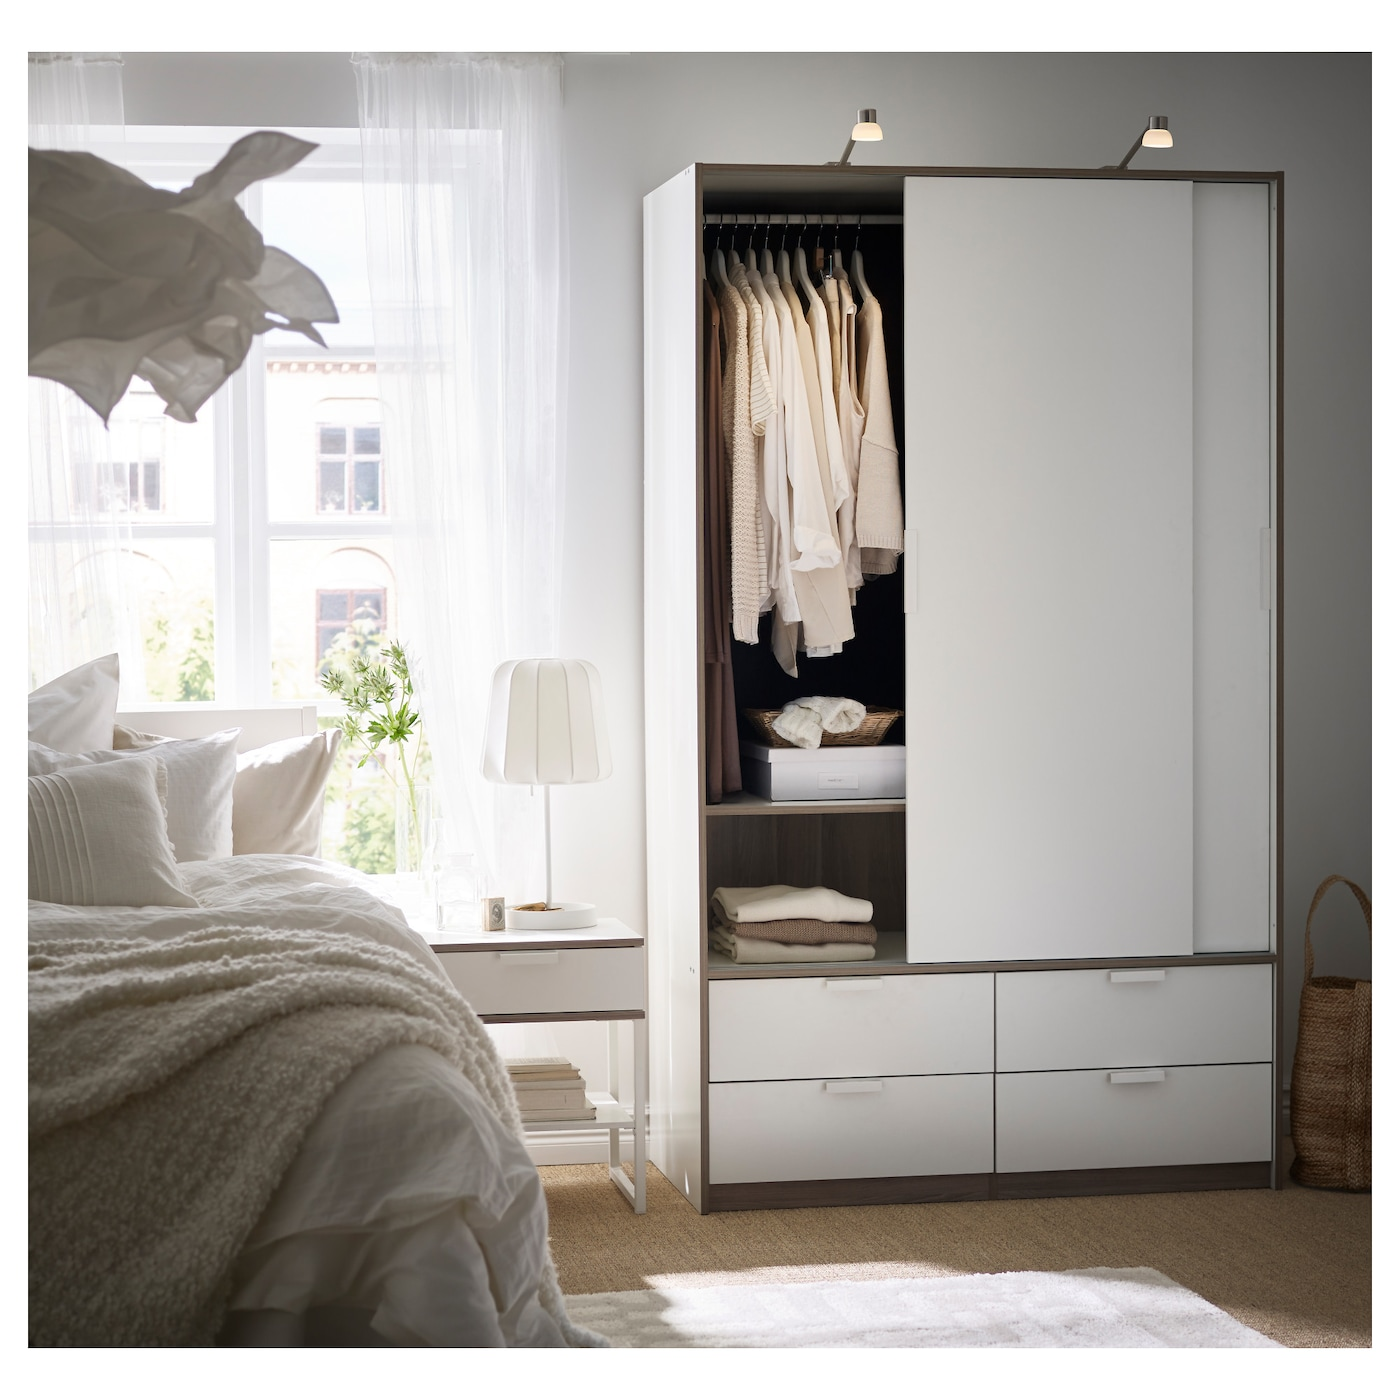 ikea trysil wardrobe w sliding doors 4 drawers smooth running drawers